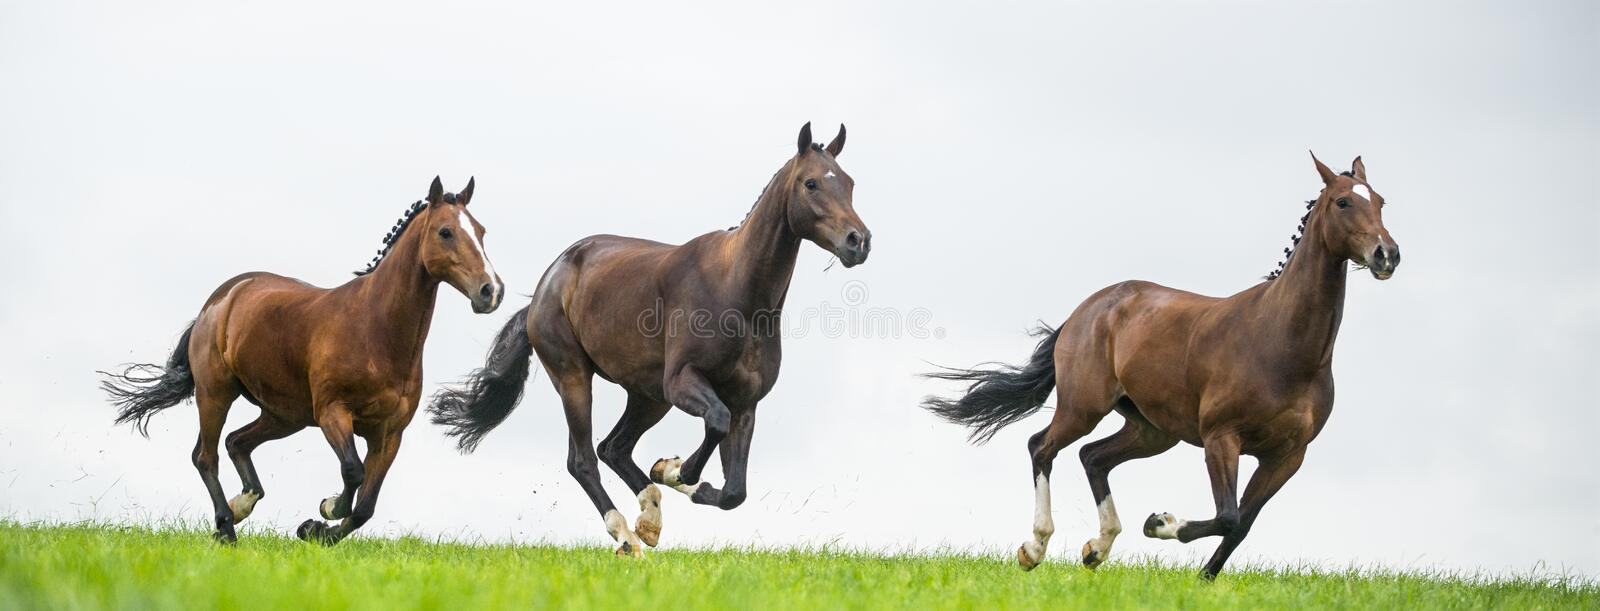 Horses galloping in a field stock image